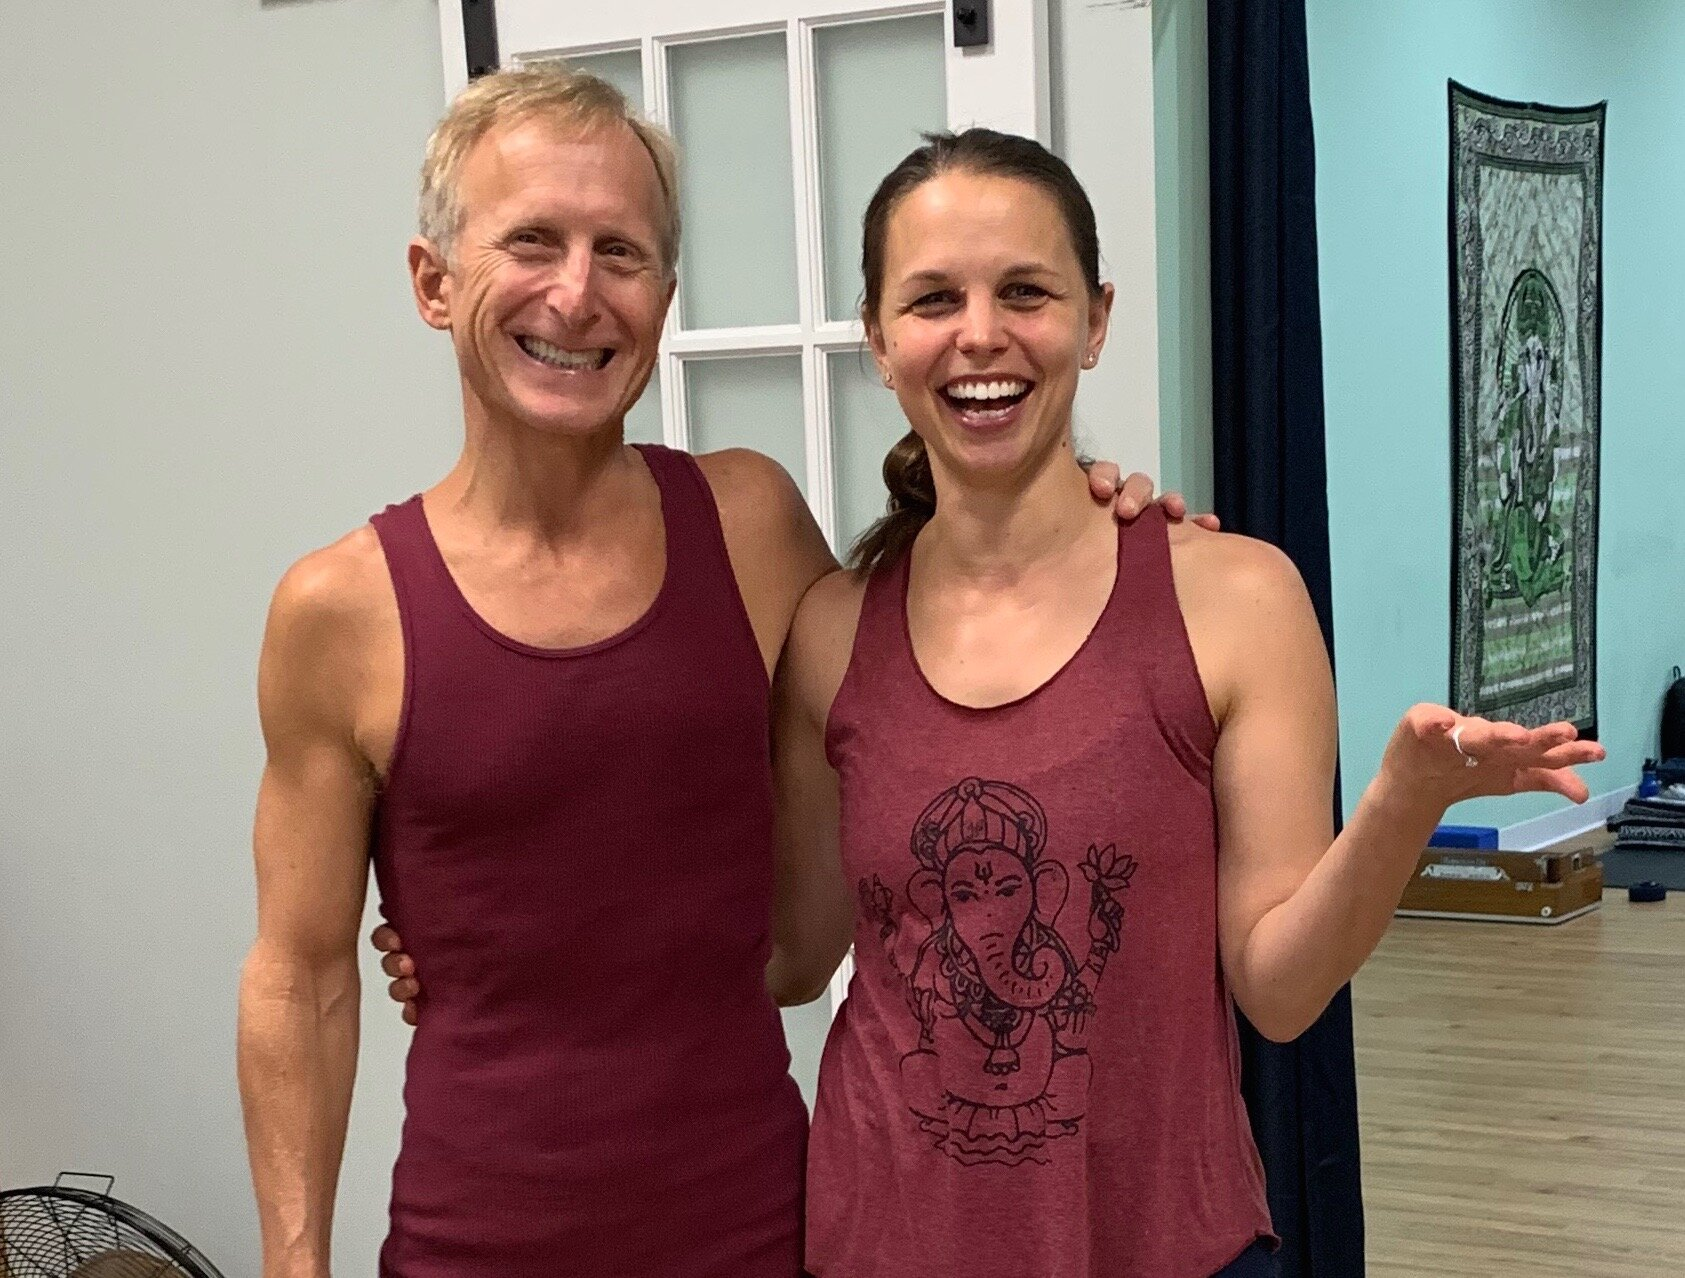 Accidentally Twinning with Todd during the weekend workshop in Richmond last weekend.